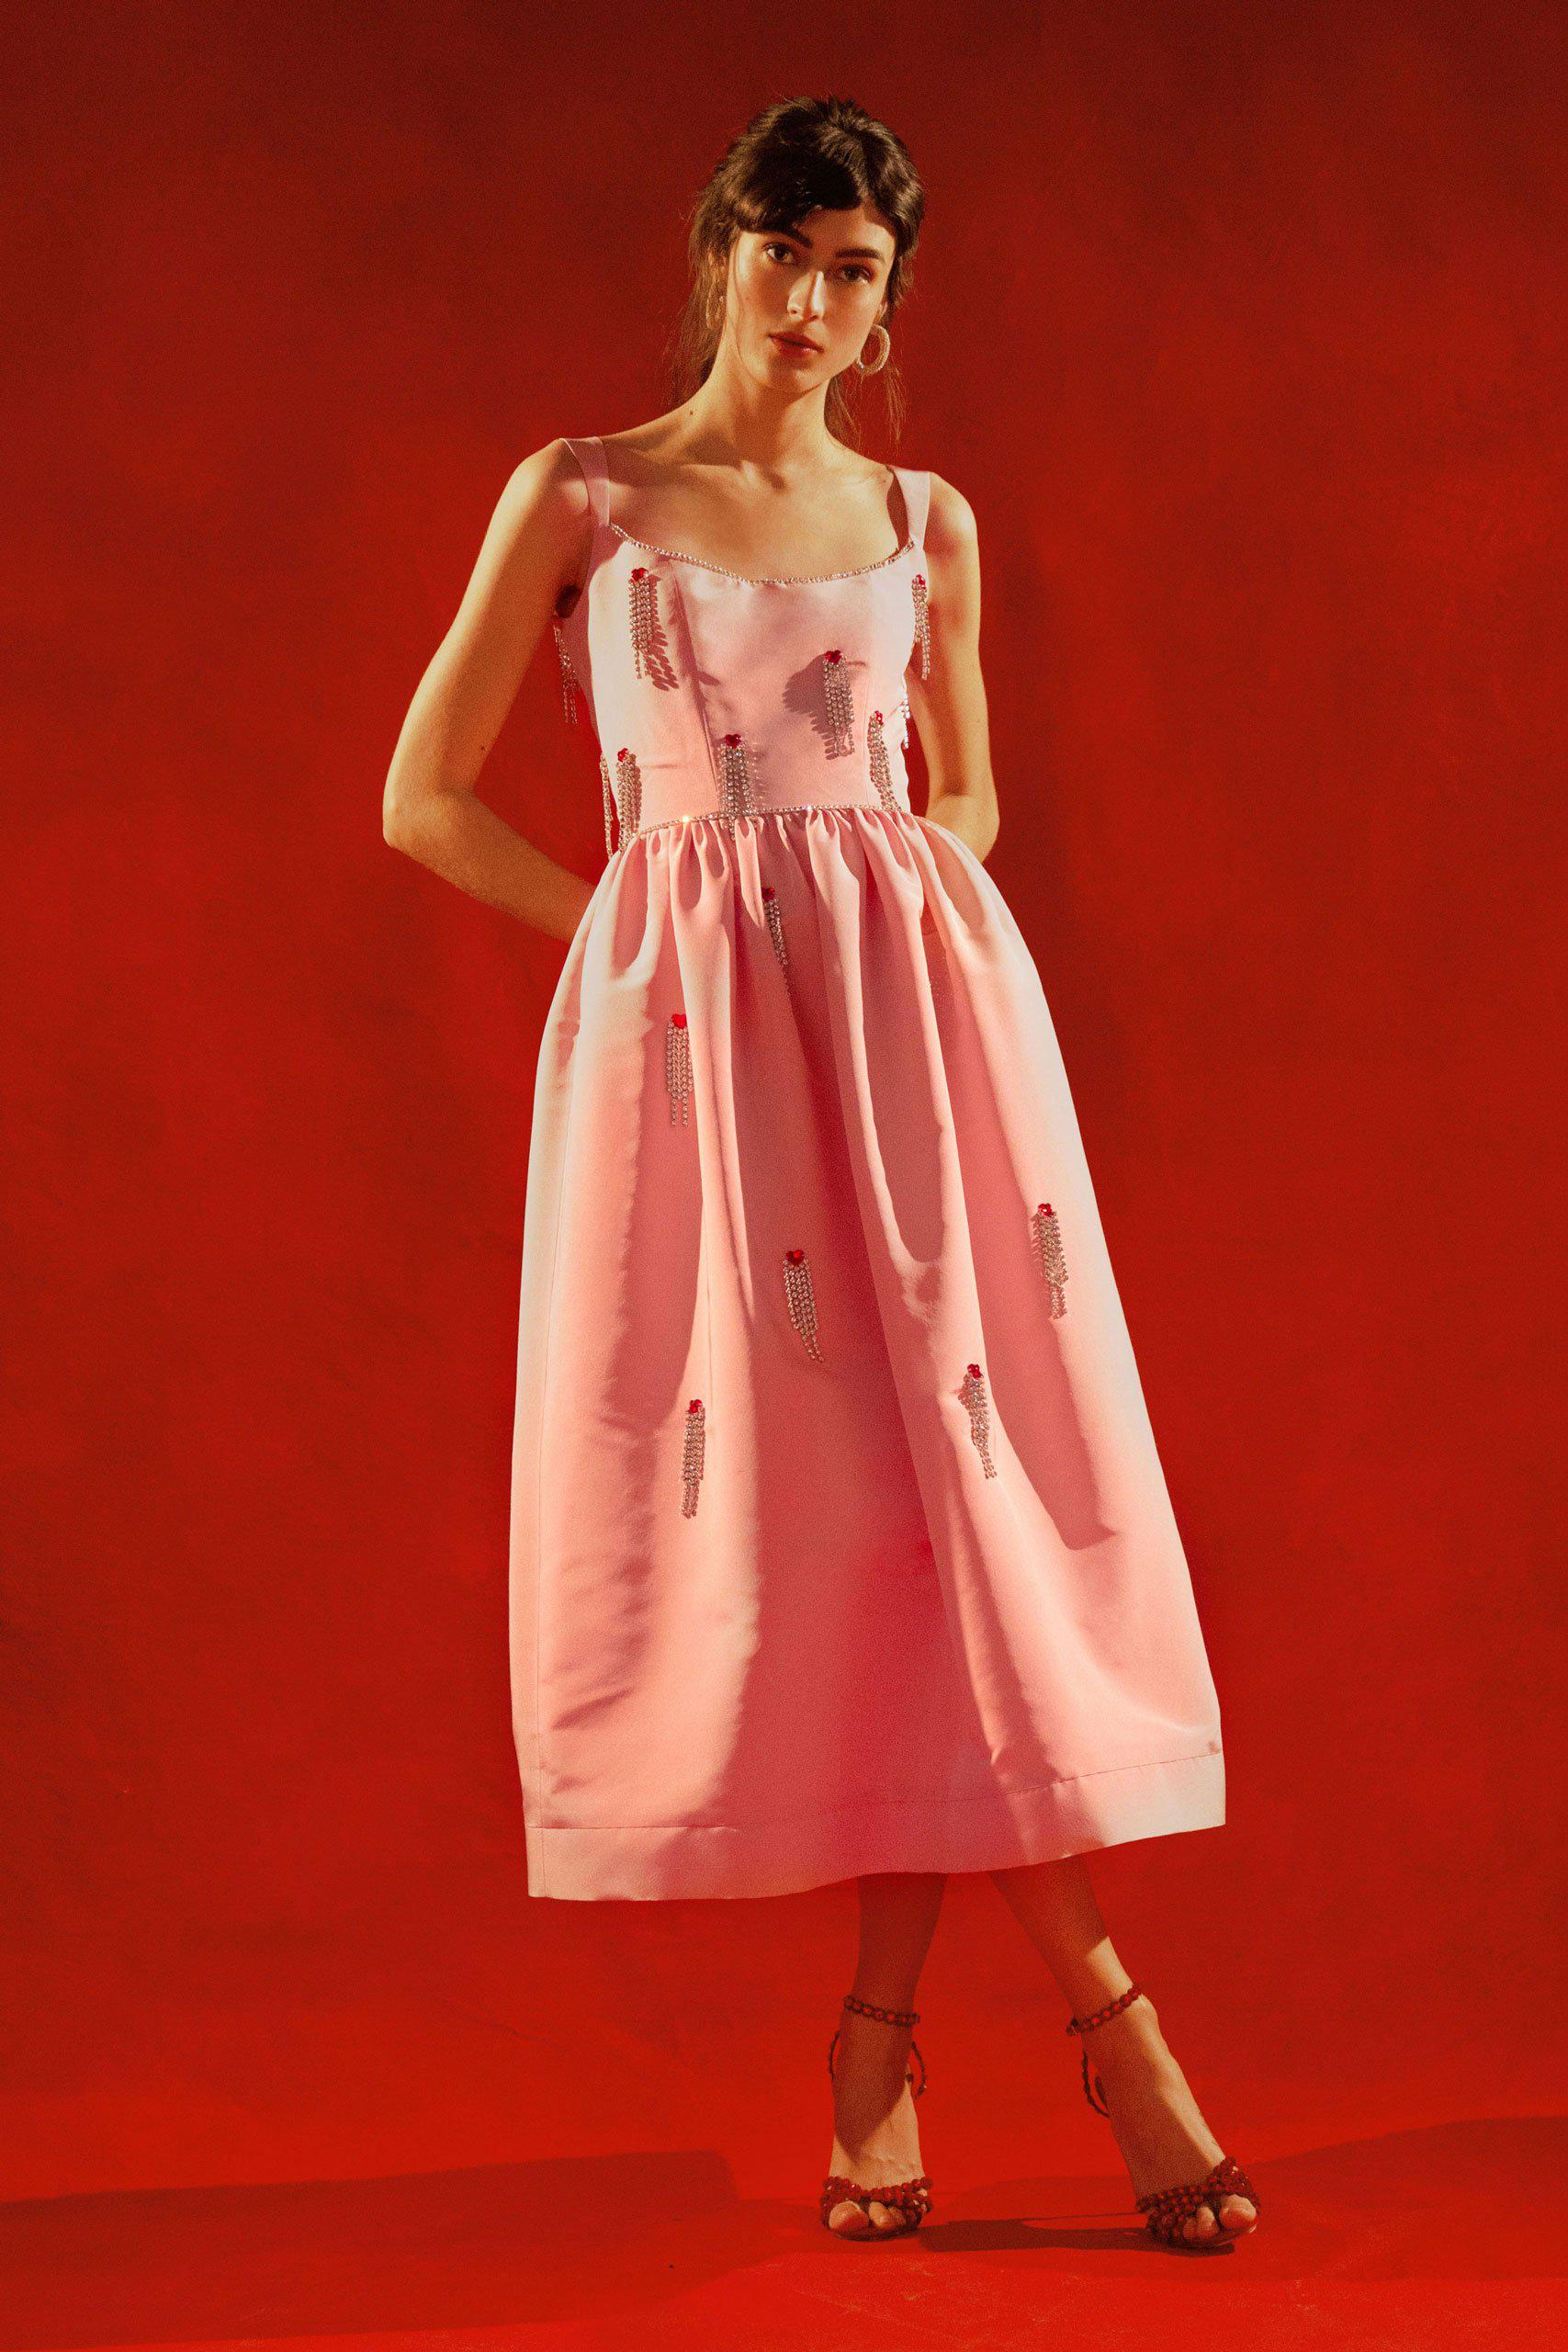 Le Coeur Shirred Pink Silk Faille Corset Dress with Crystal Embellishment